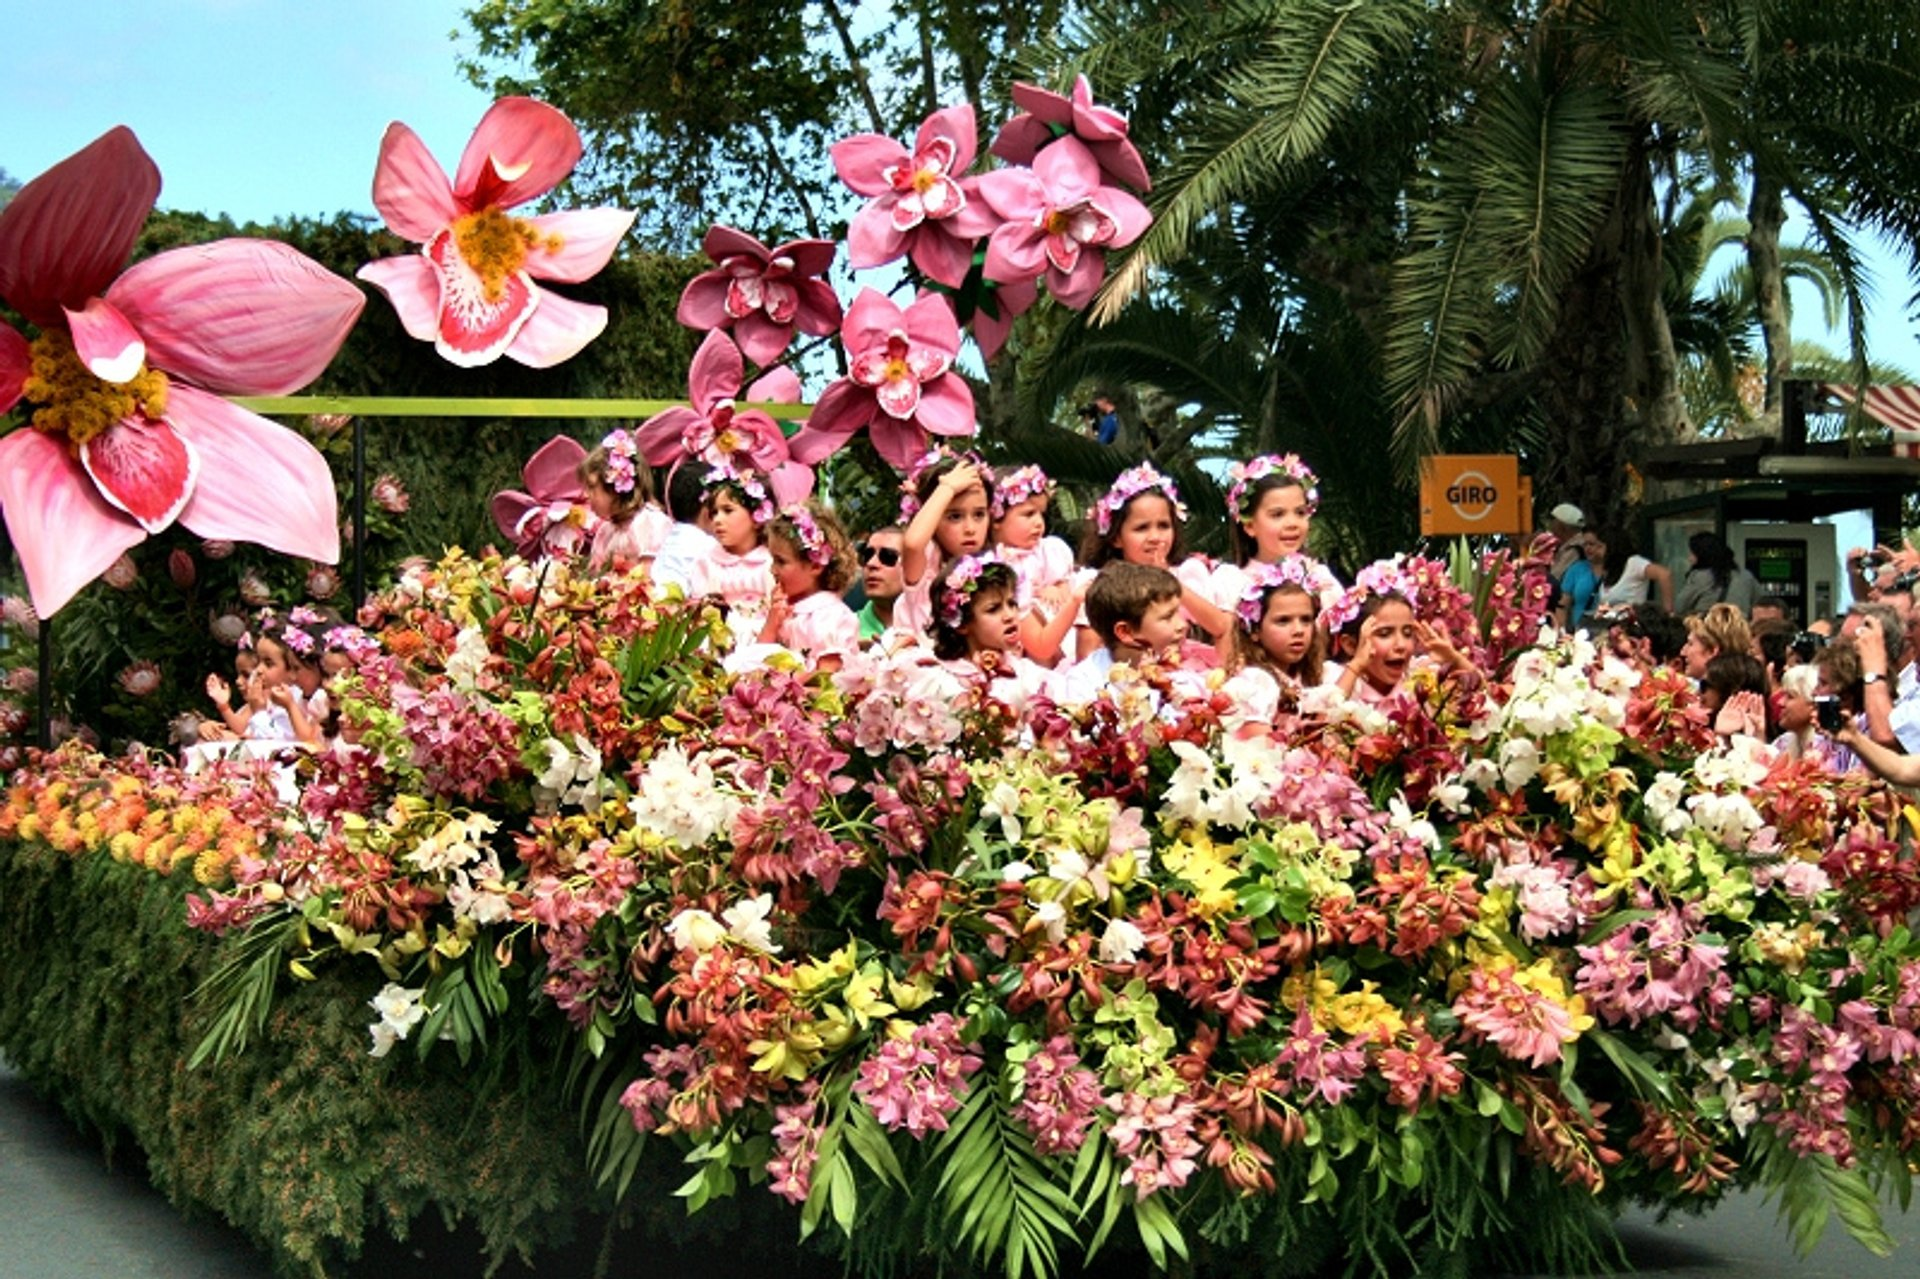 Best time for Madeira Flower Festival in Madeira 2020